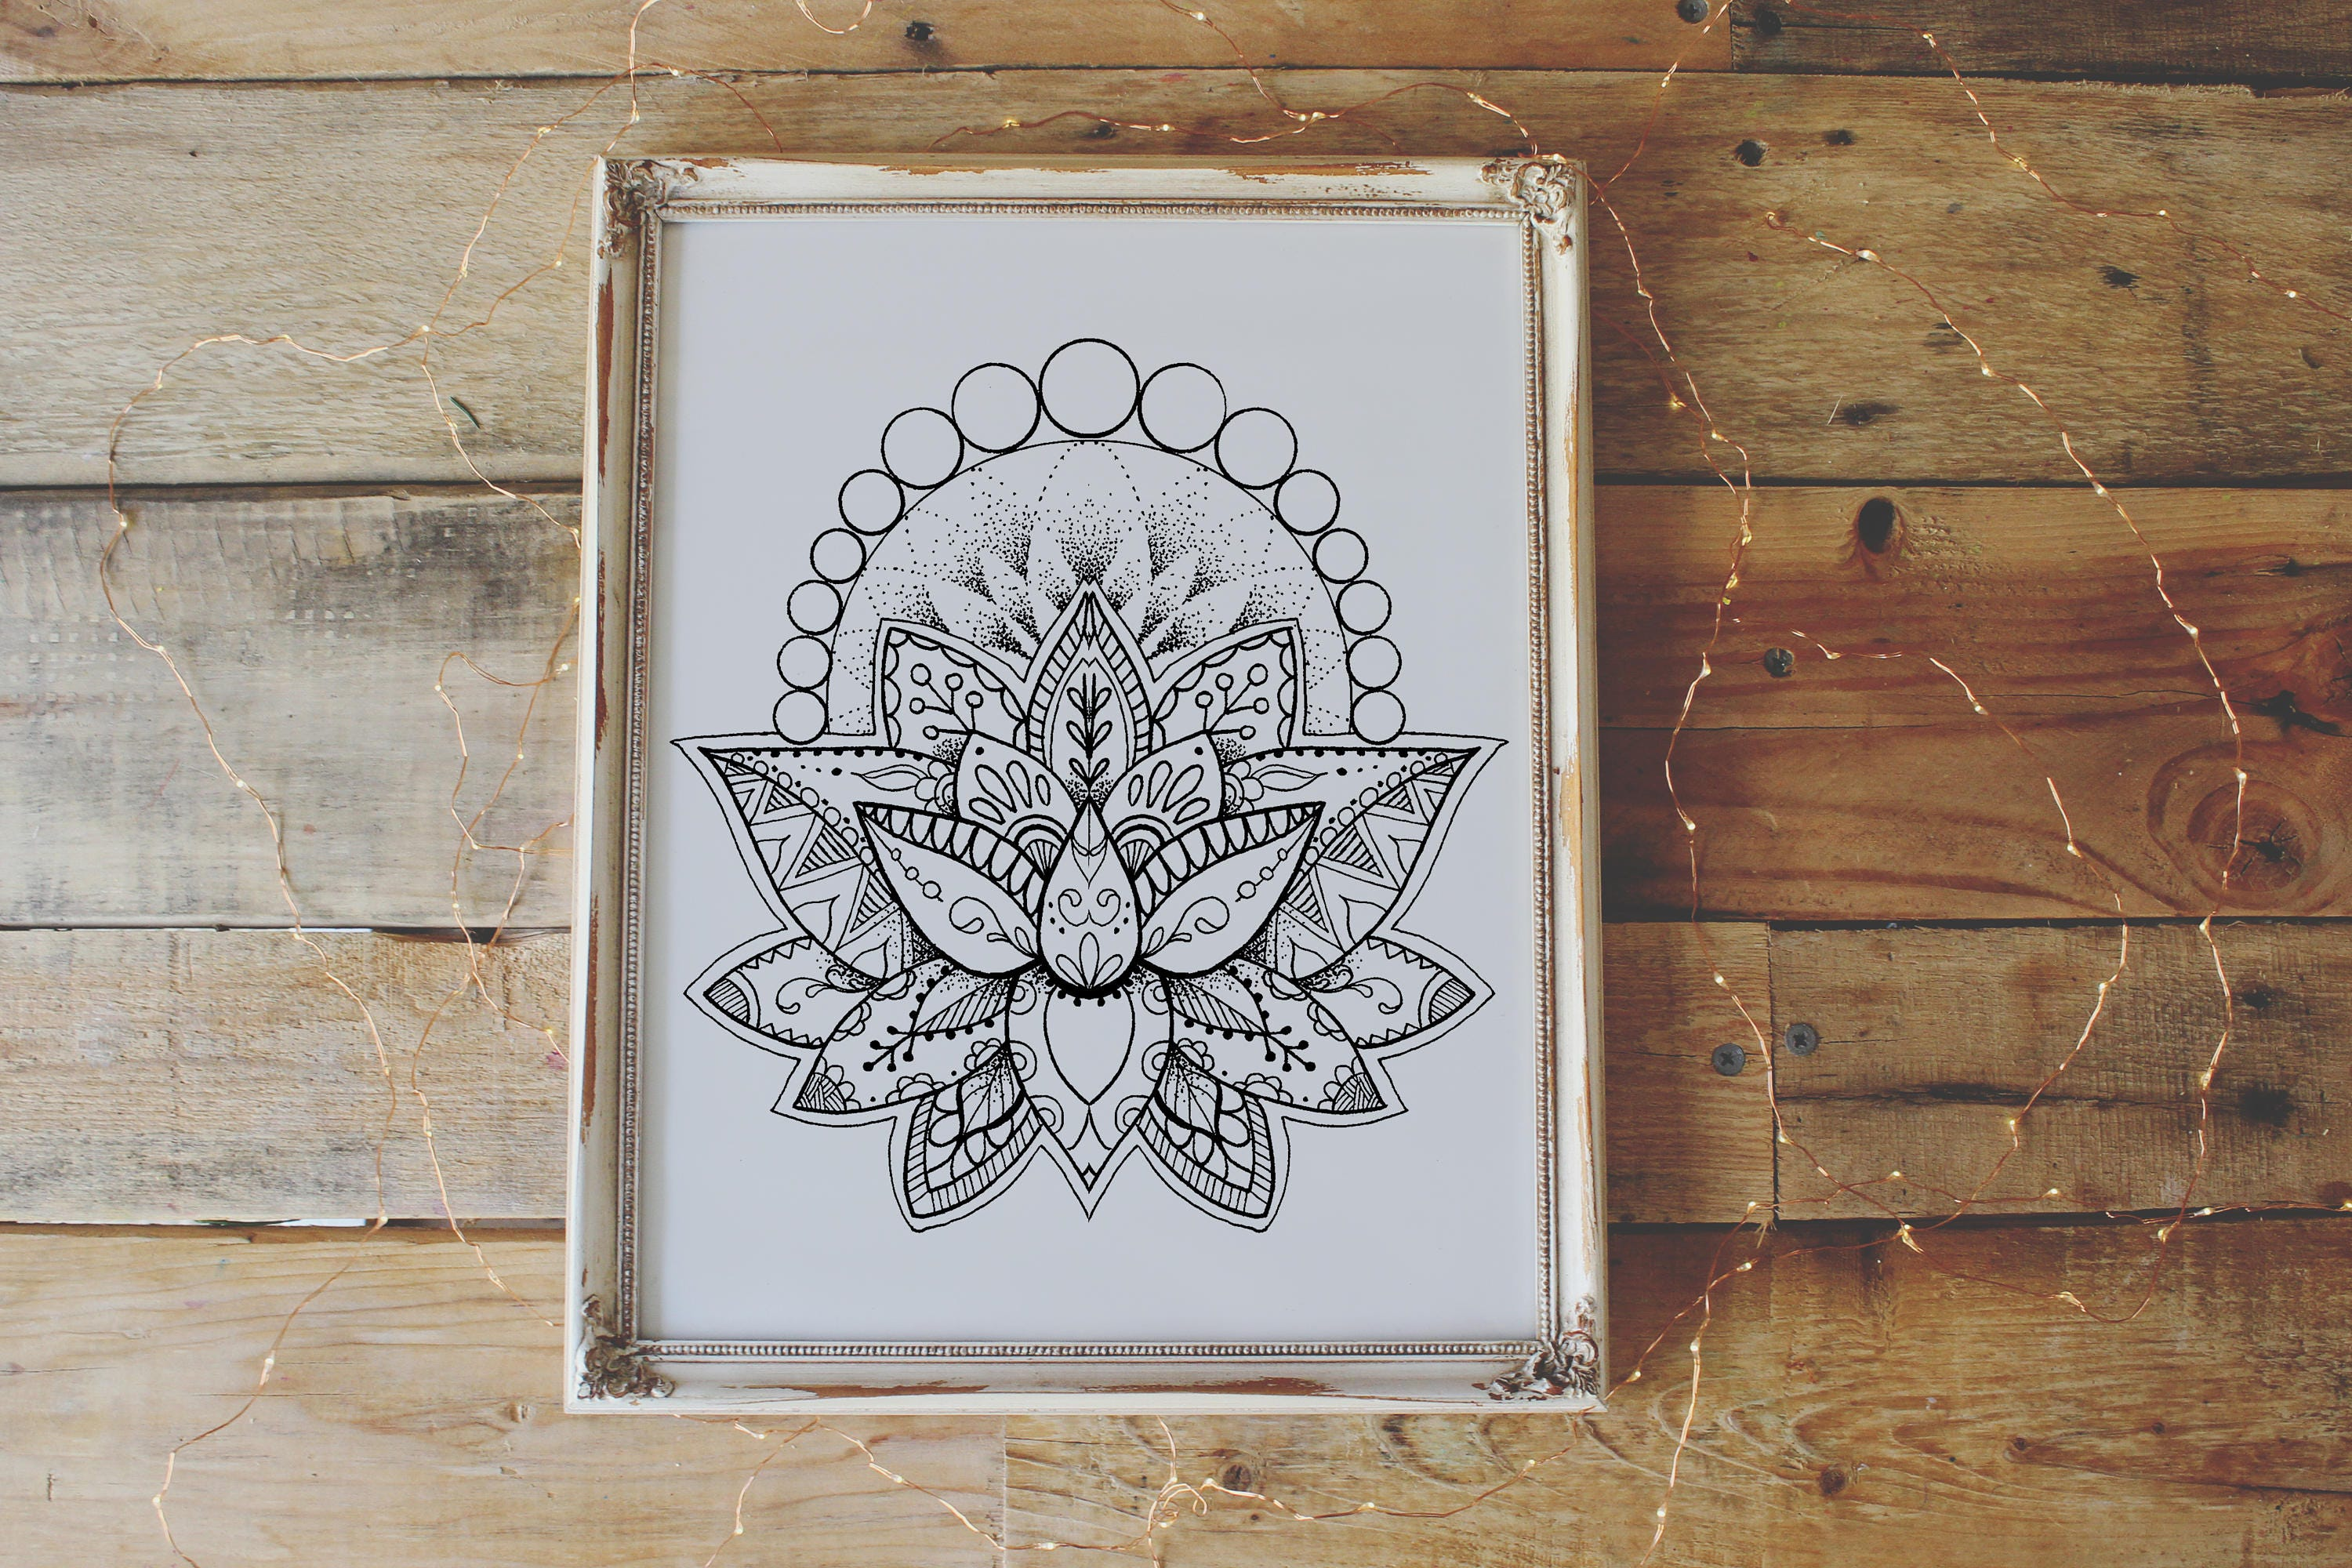 Lotus Flower Coloring Page - Instant Download Print Your Own Coloring Pages Adult Coloring Book